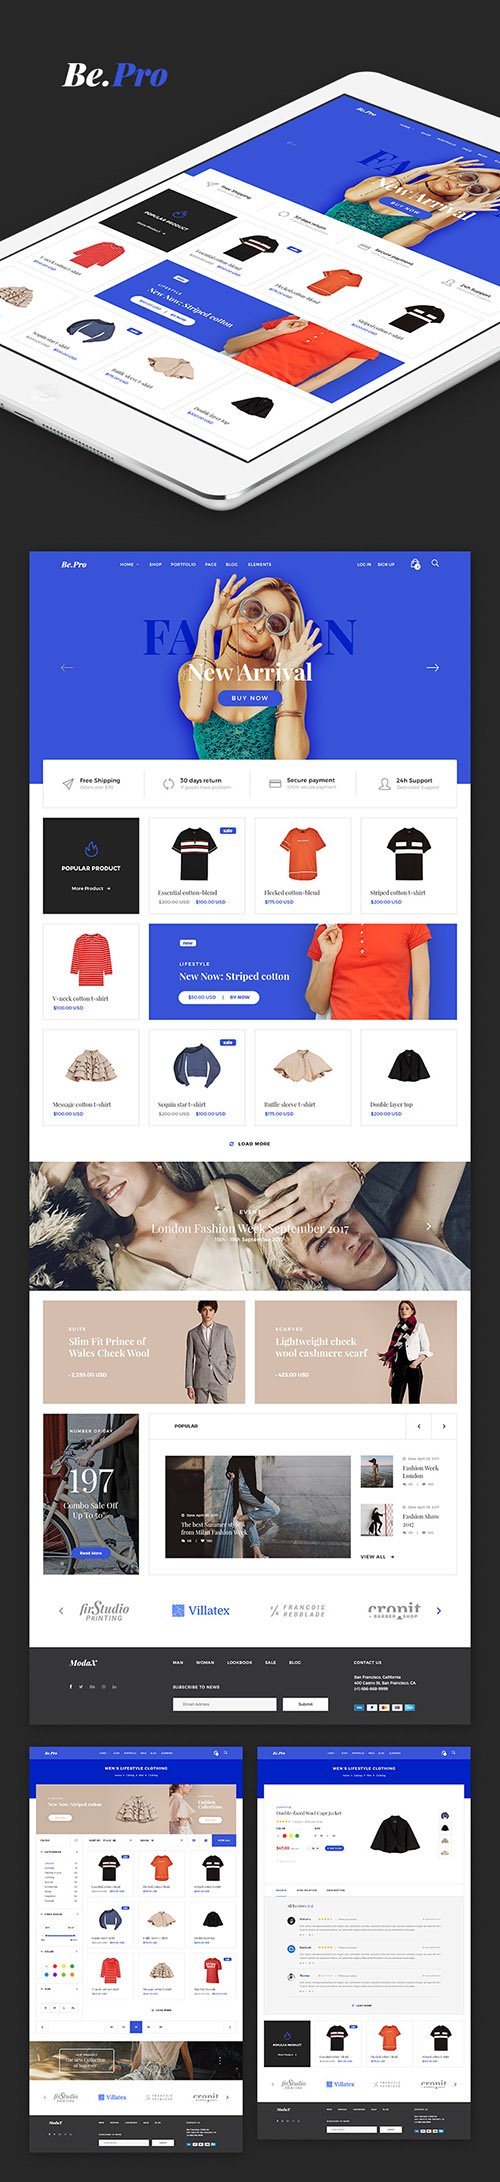 PSD Web Template - Be.Pro - Fashion eCommerce Theme